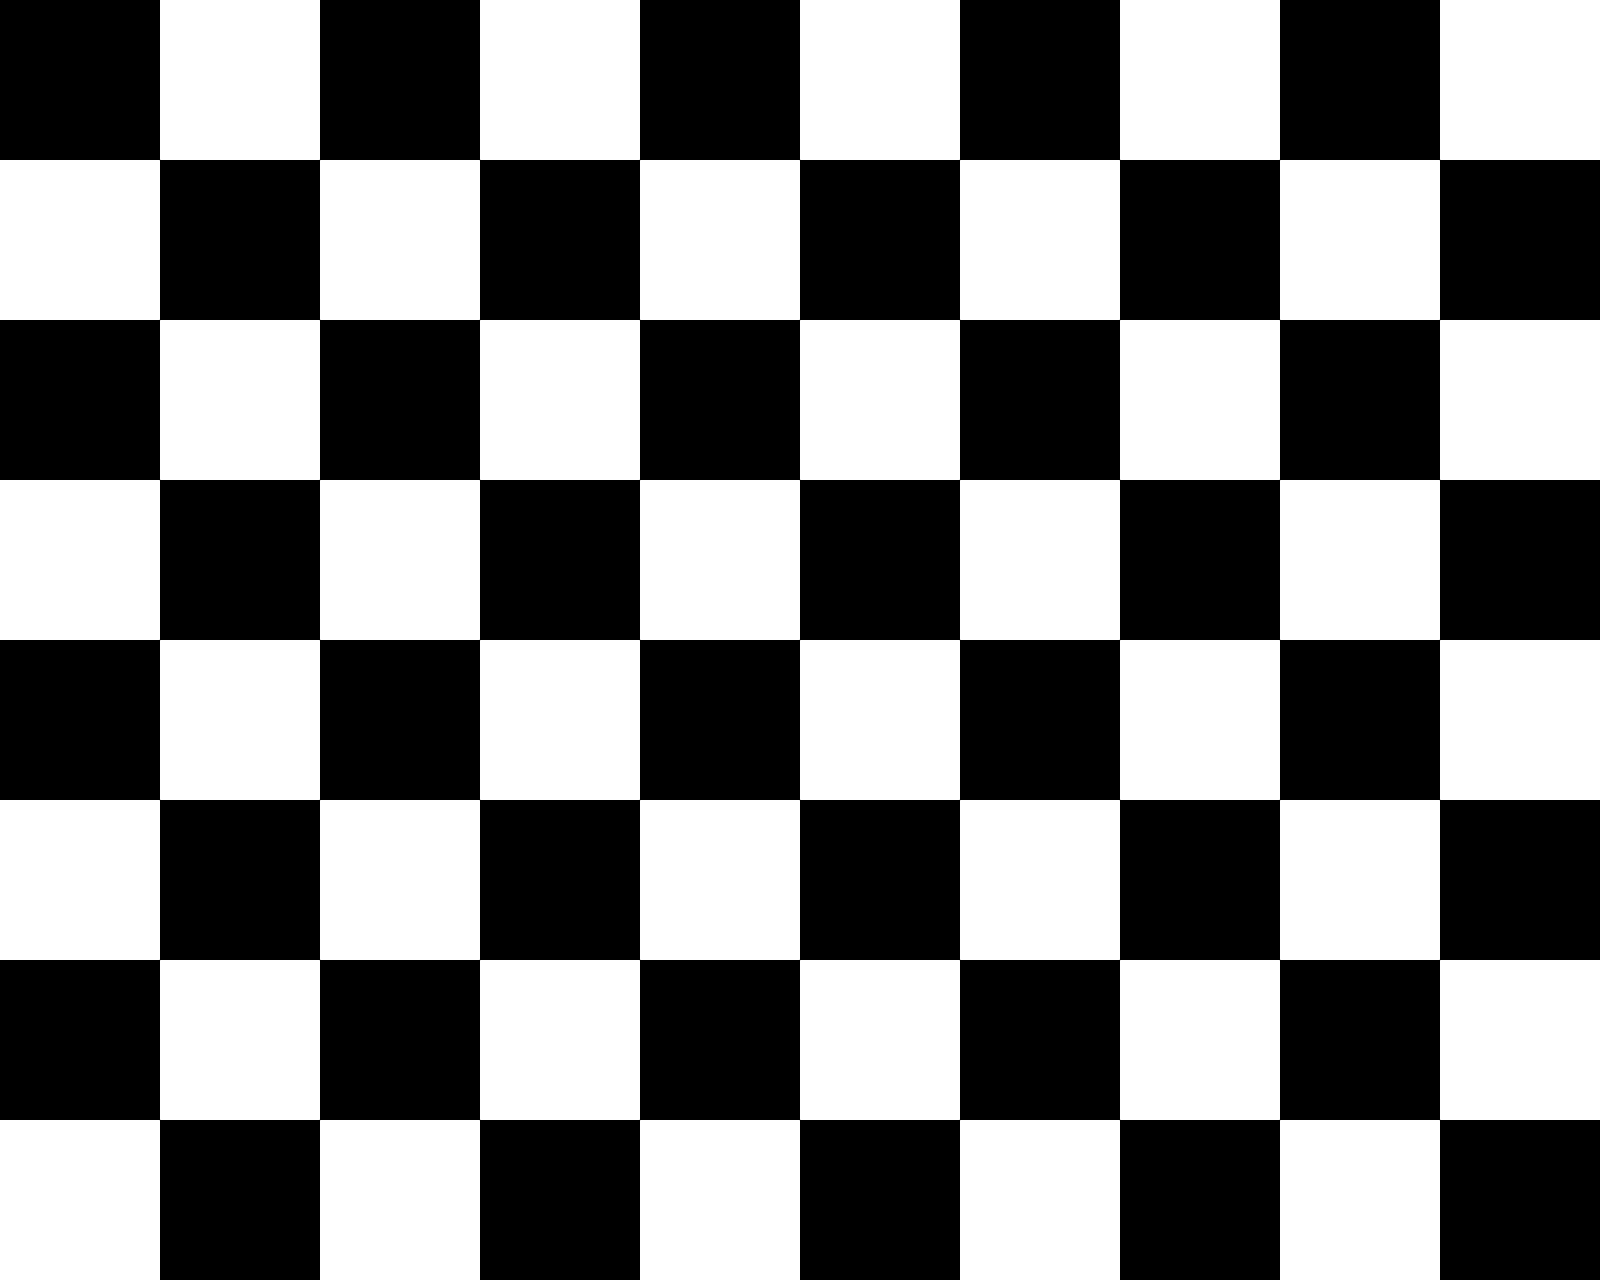 Checkered Wallpaper: Checkered Wallpaper View Icon 16x16 Png